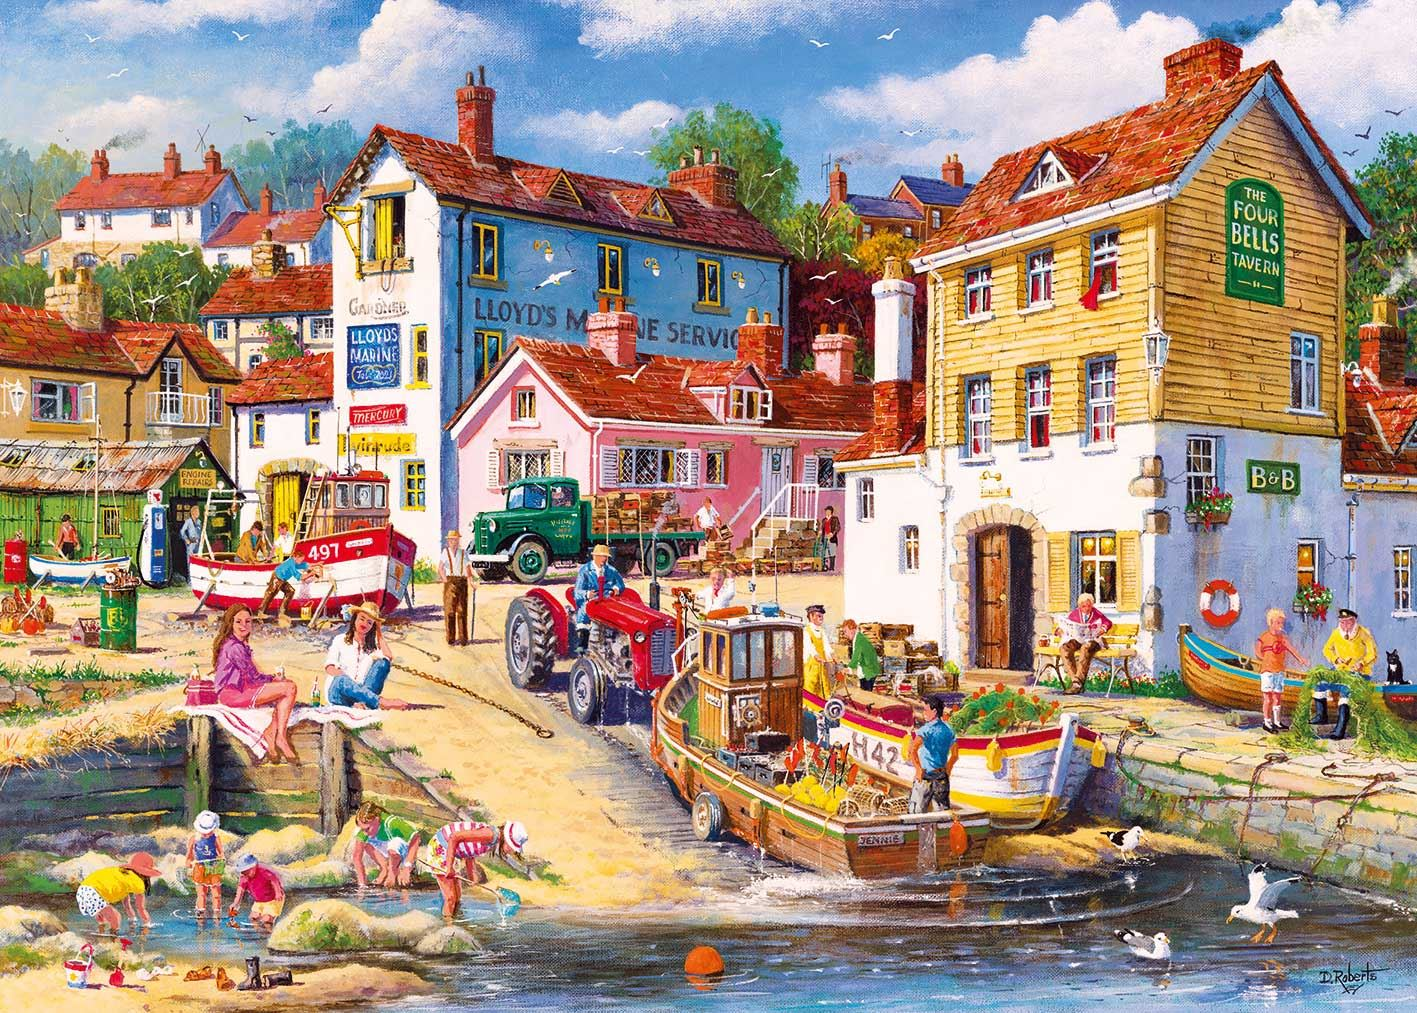 Gibsons The Four Bells Jigsaw Puzzle (1000 pieces)